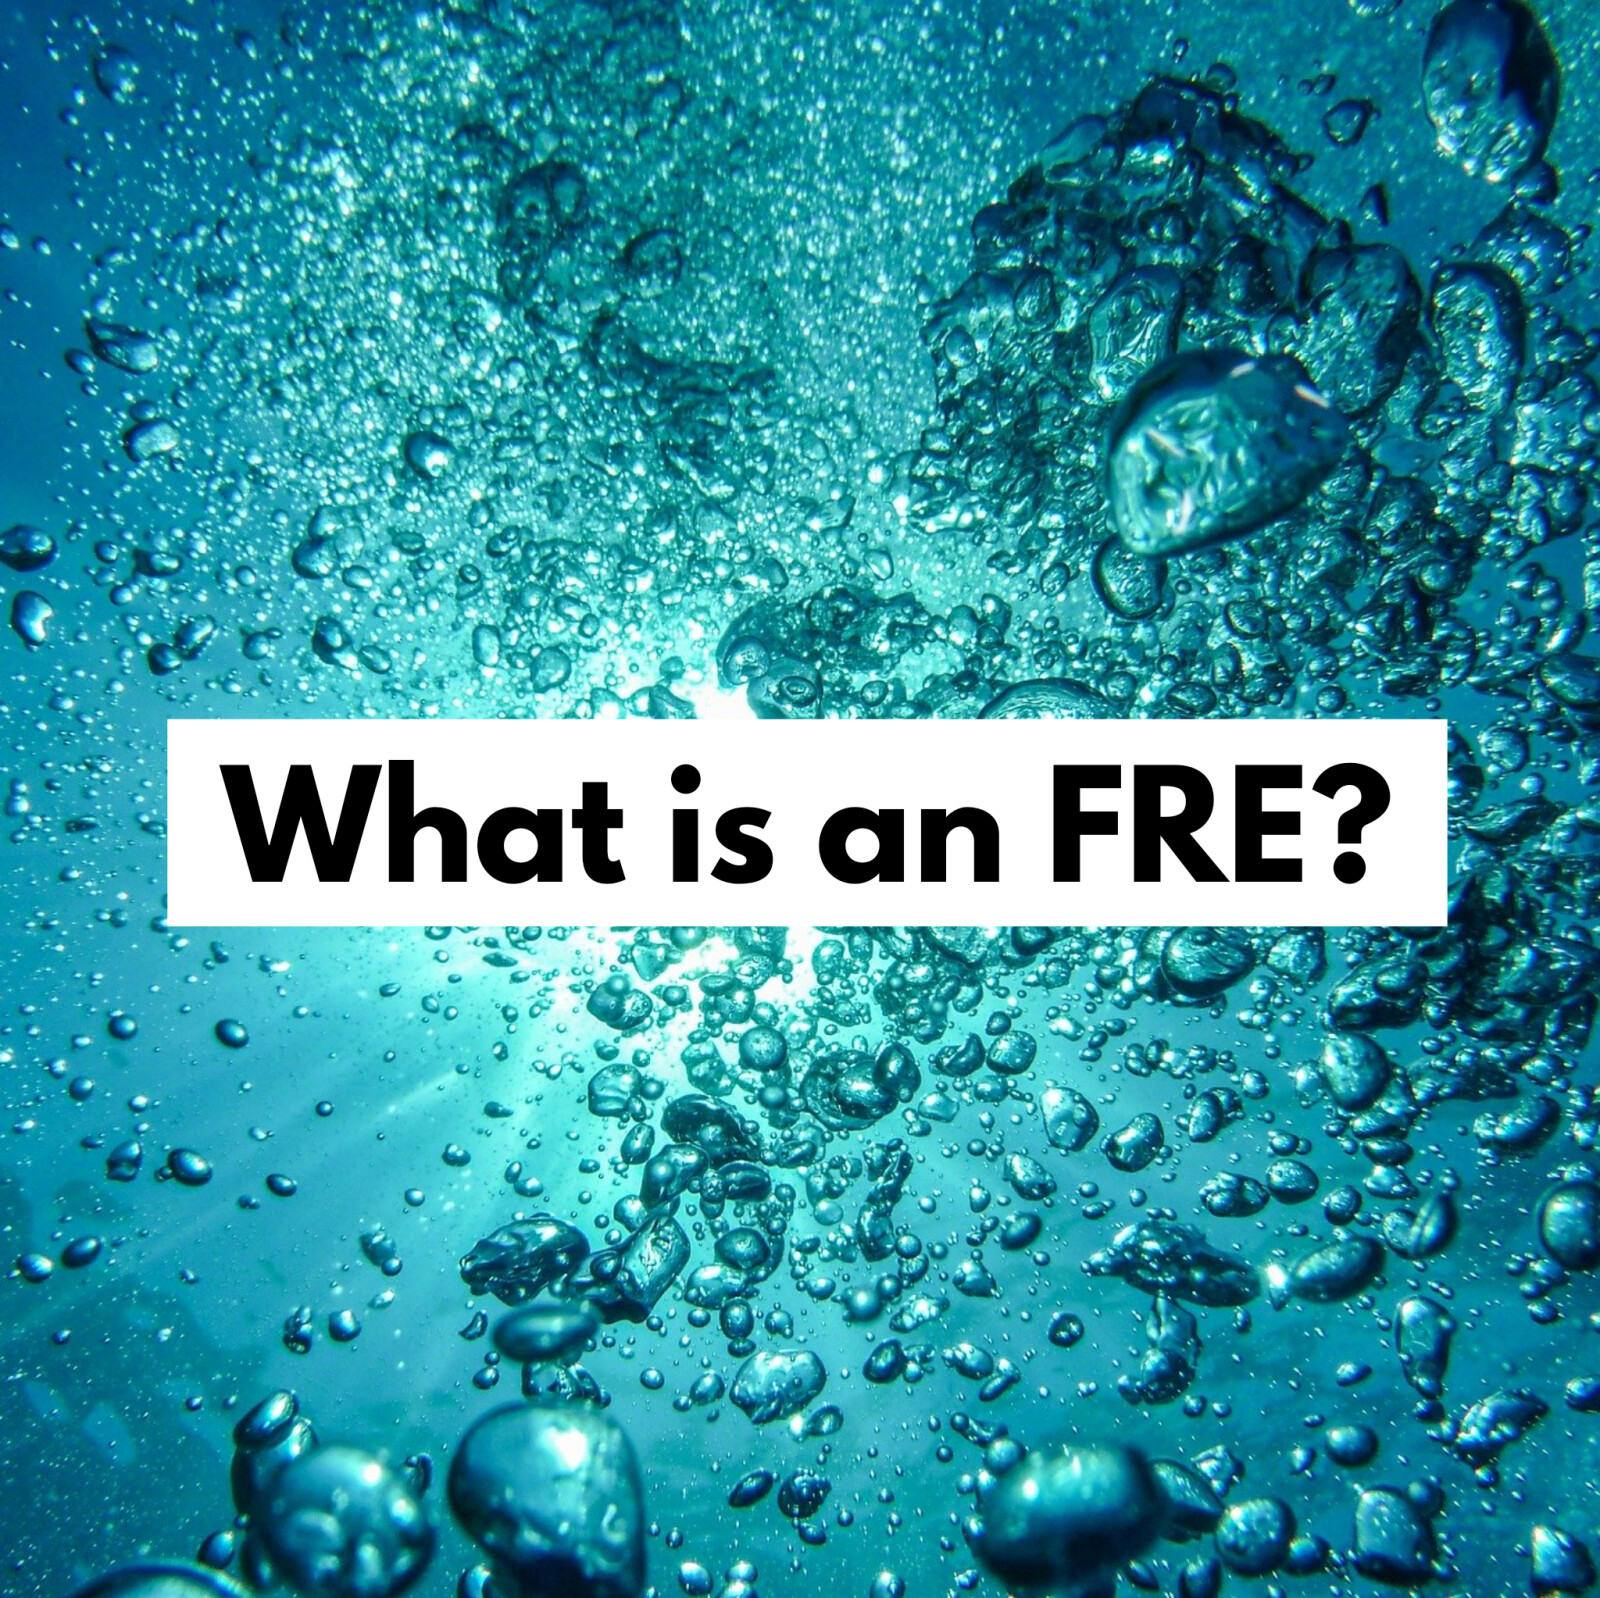 What is an FRE?